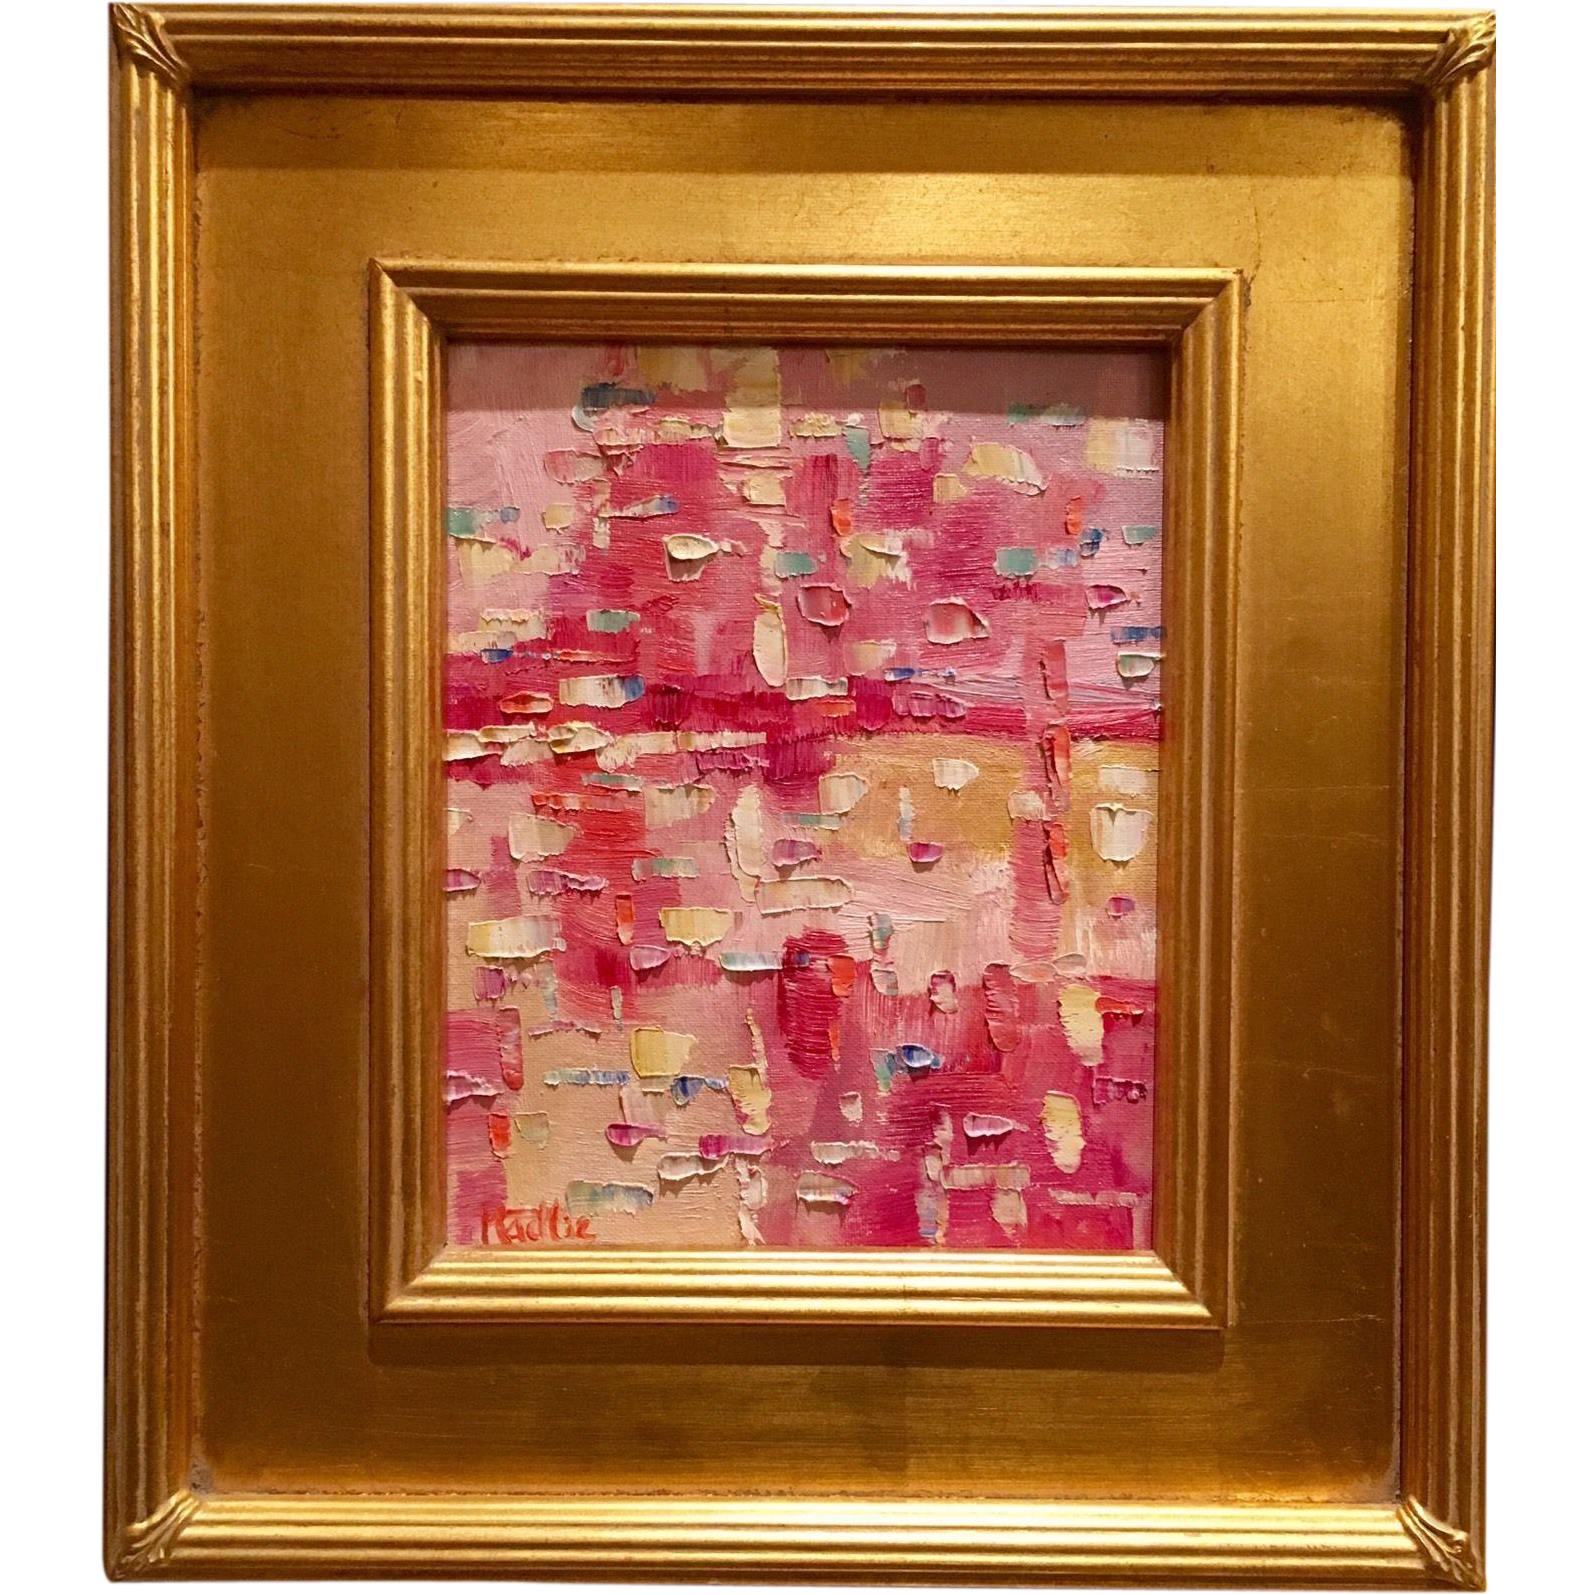 Abstract impasto of pink color original oil painting by artist abstract impasto of pink color original oil painting by artist sarah kadlic 8x10 framed gilt plein air frame jeuxipadfo Image collections